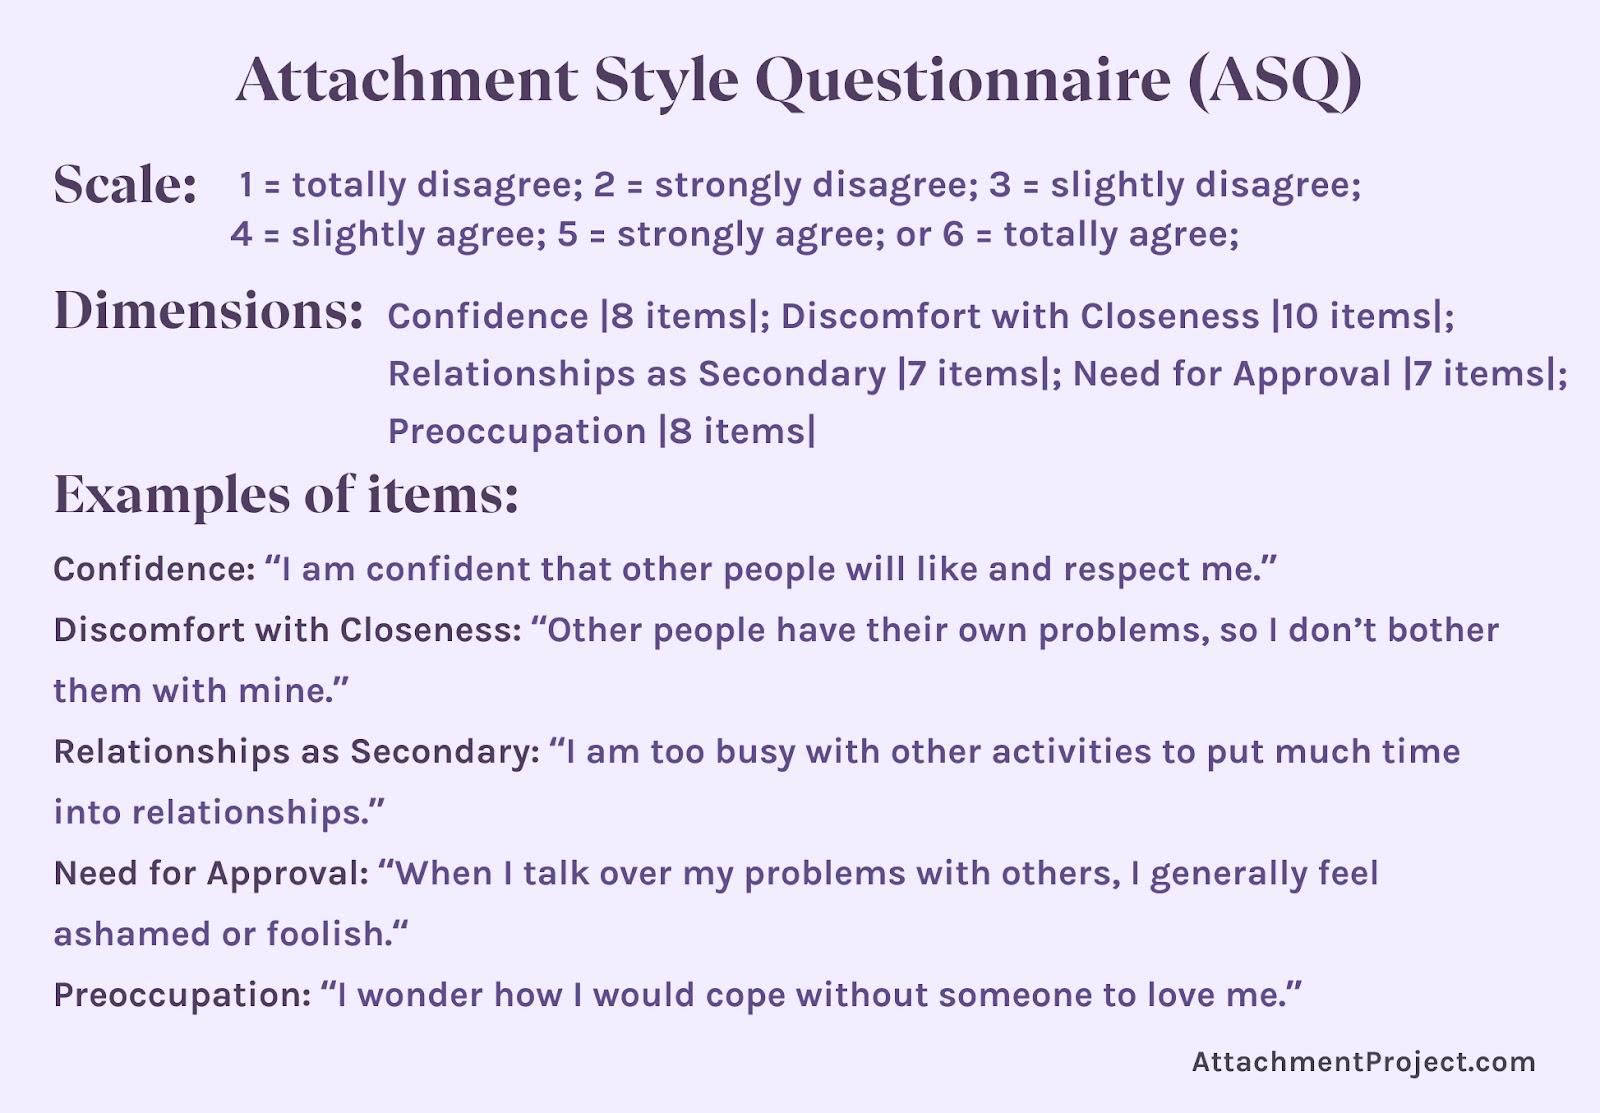 Attachment Style Tests - Attachment Style Questionnaire (ASQ)